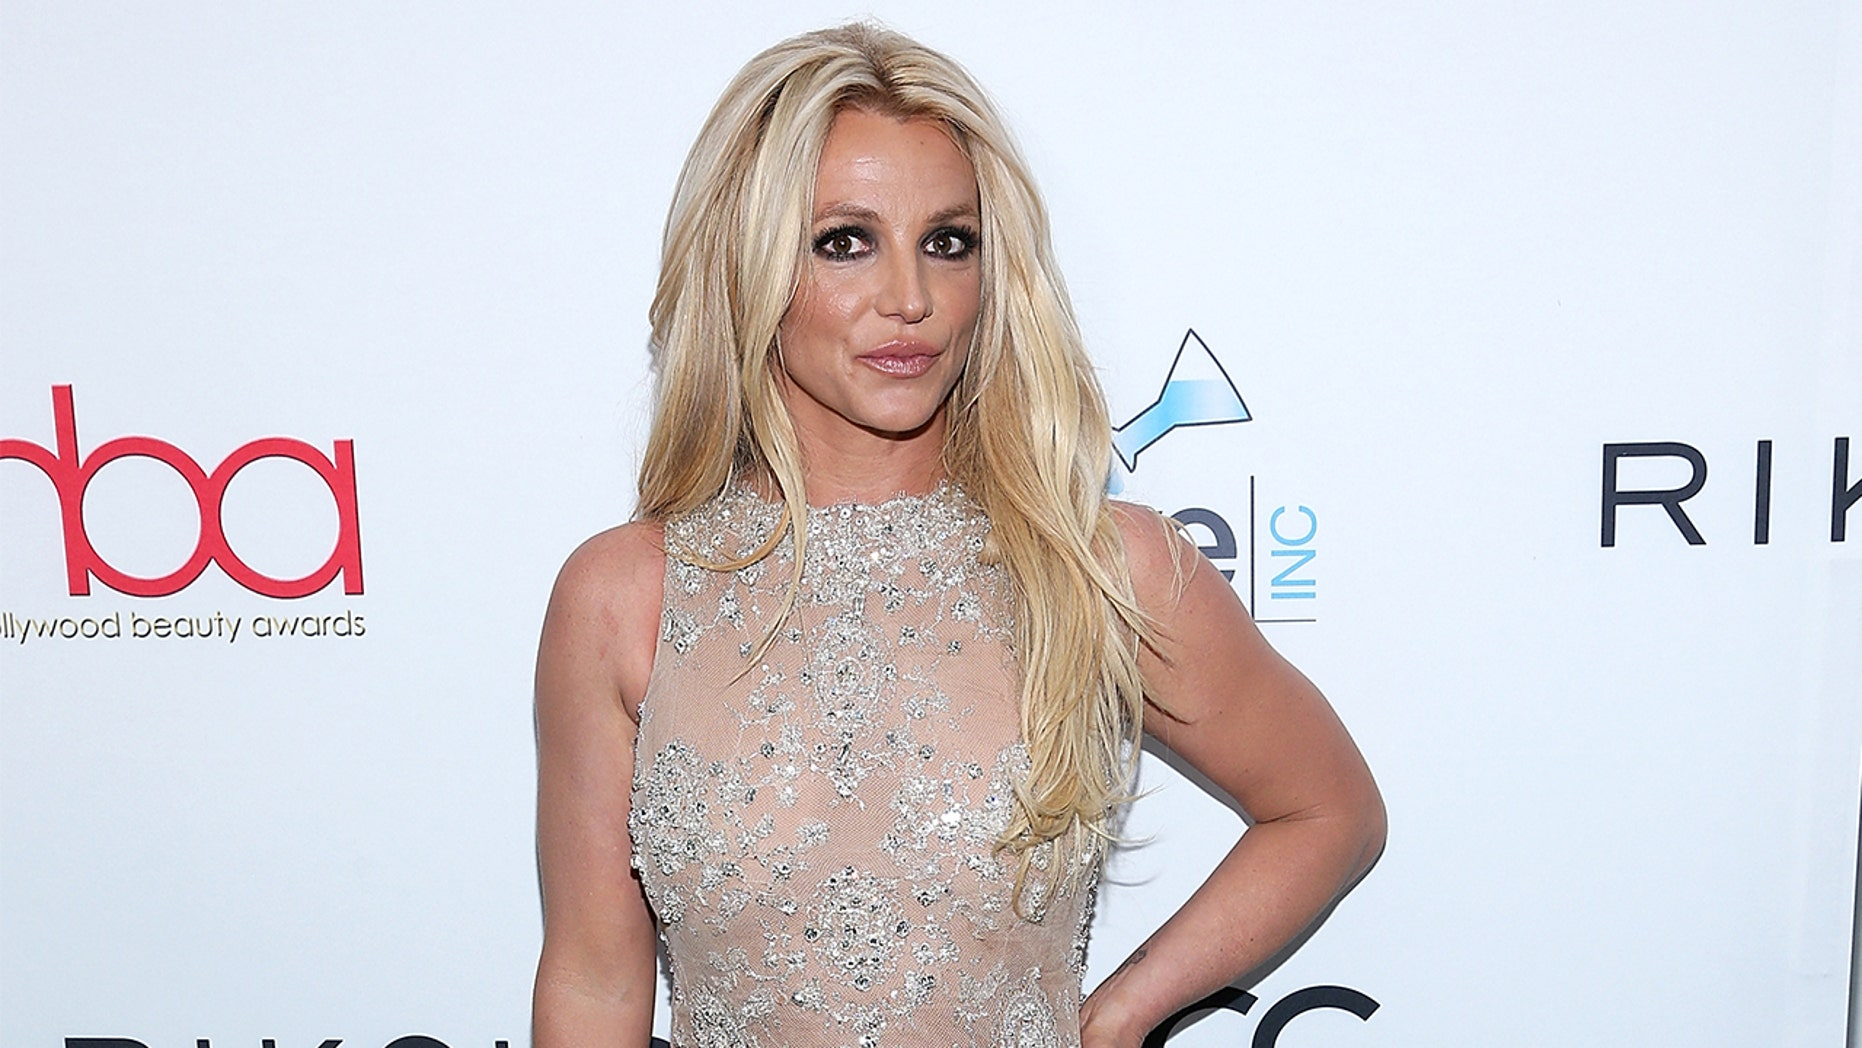 Britney Spears announced on Friday she is taking an indefinite work hiatus to be by her father's side amid his illness.